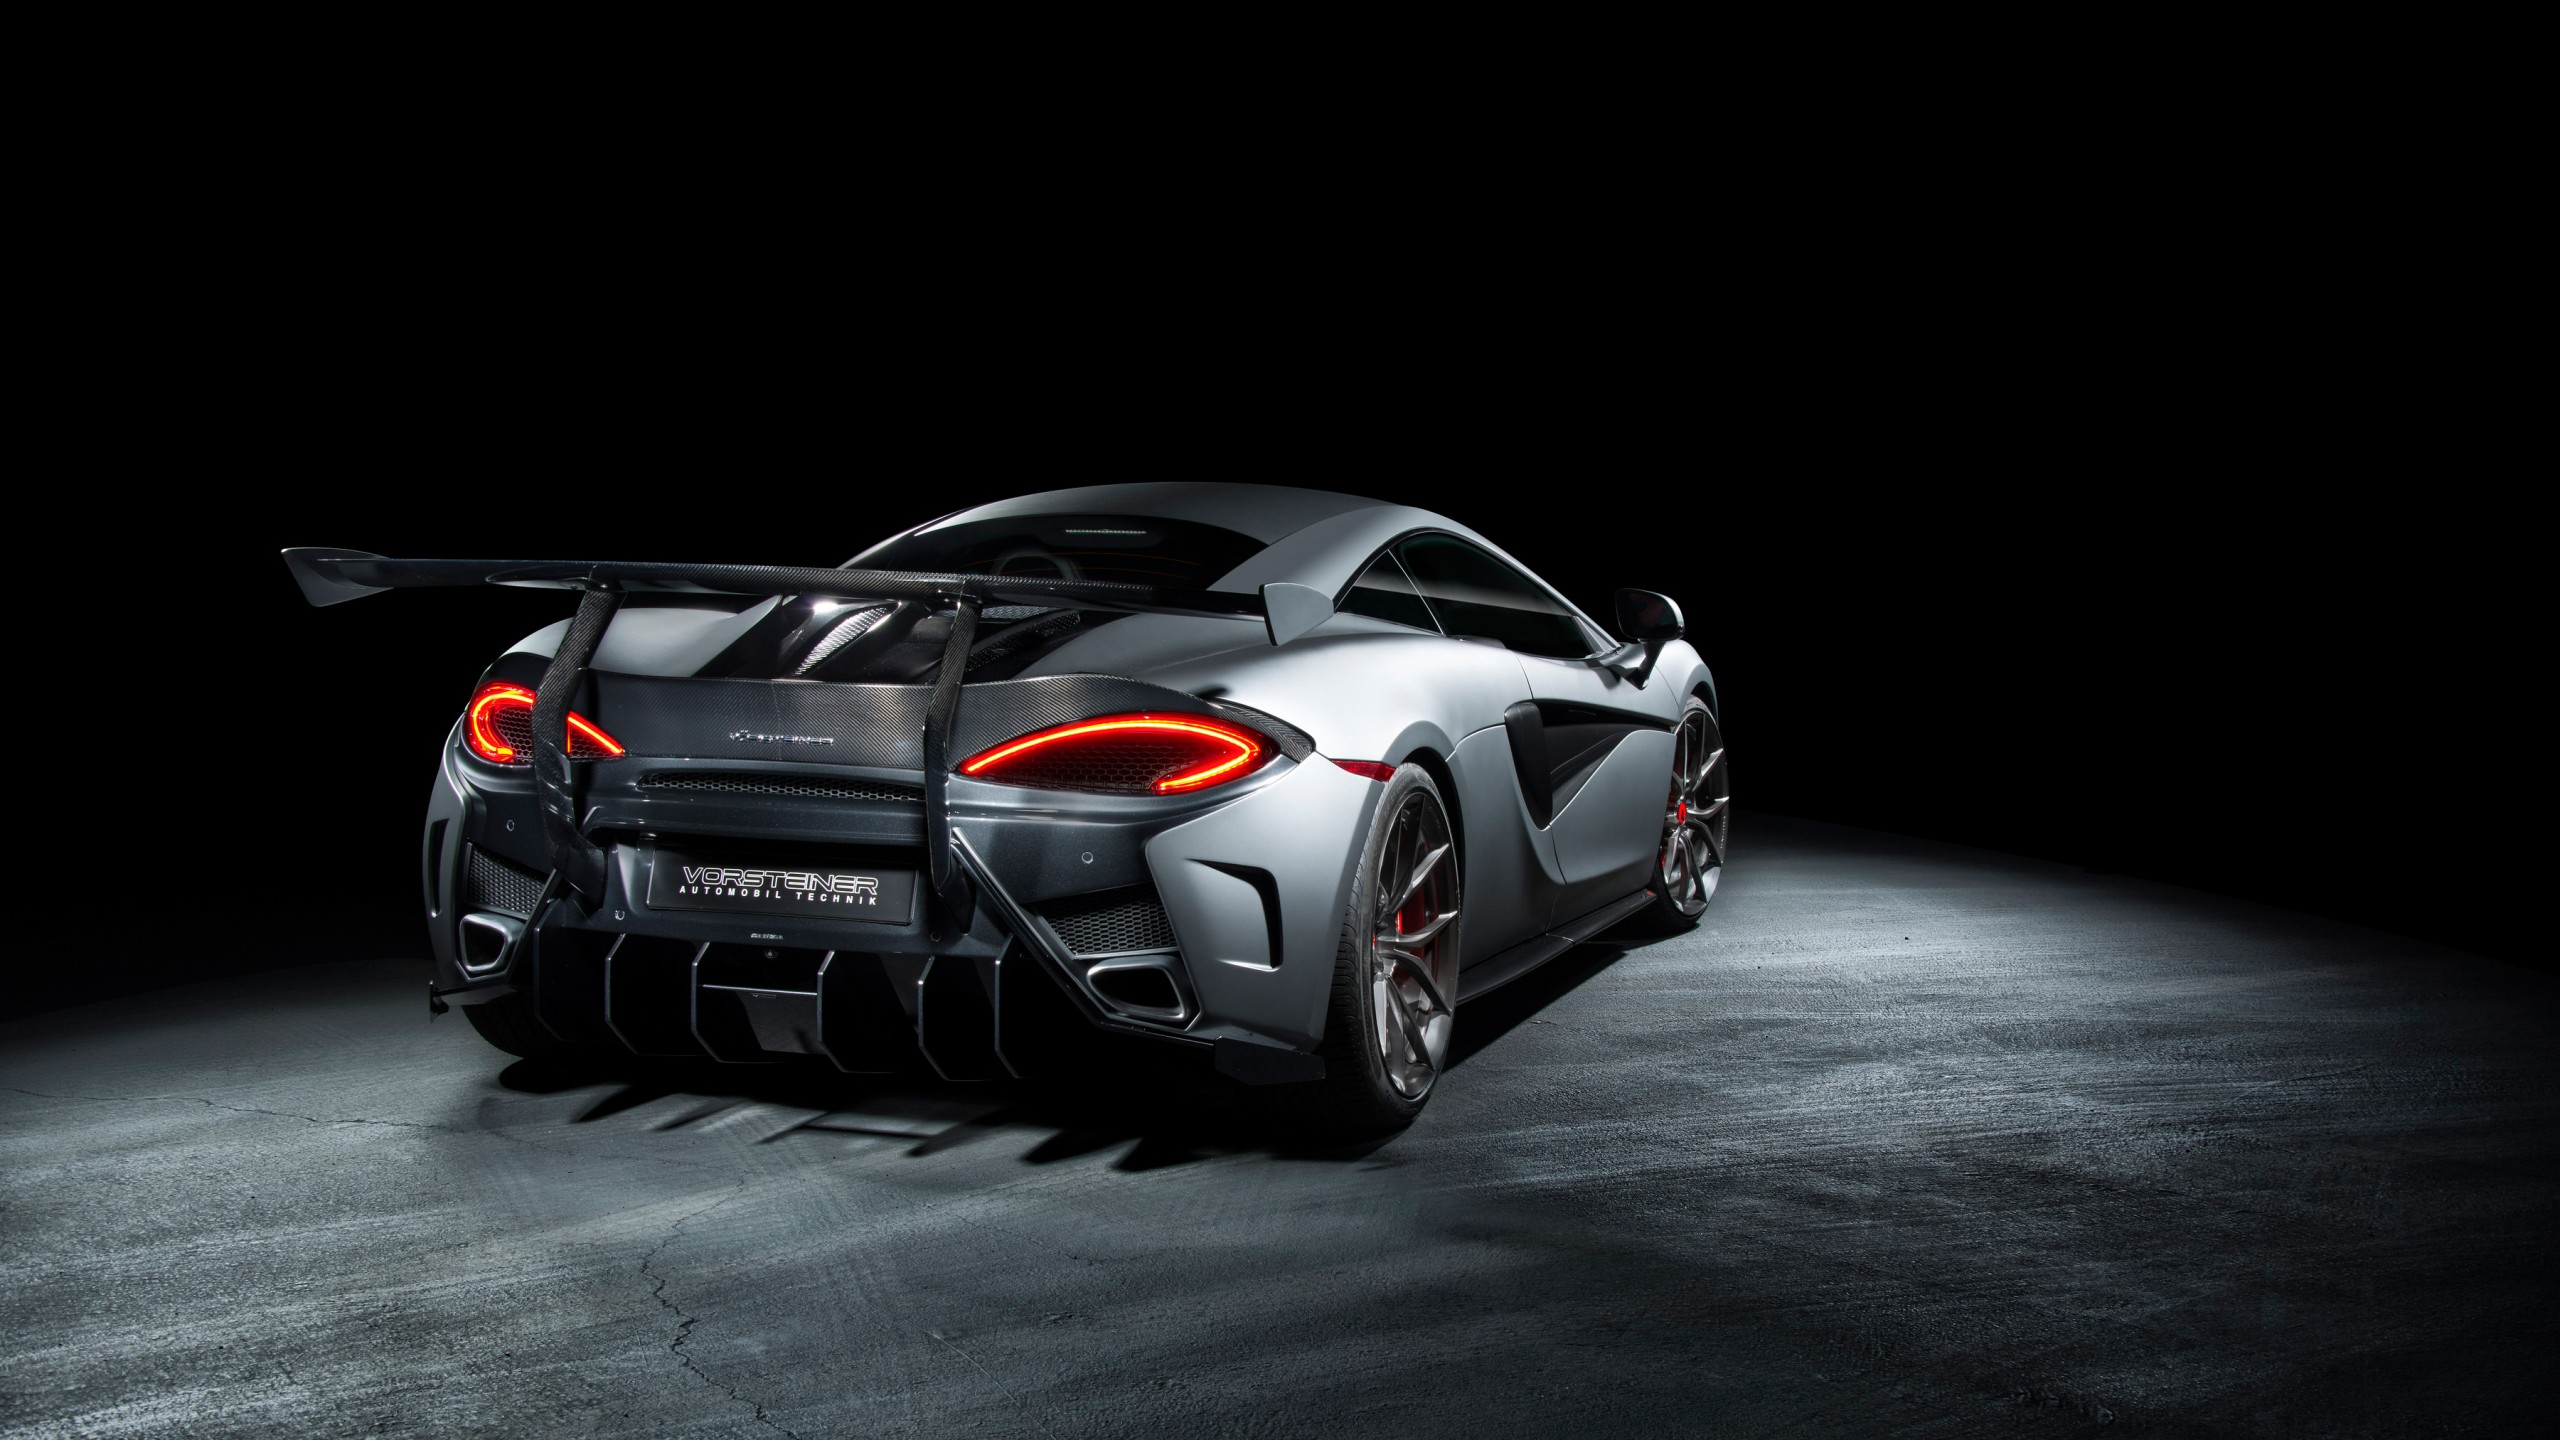 Vorsteiner Mclaren 570 VX 2 Wallpaper | HD Car Wallpapers ...